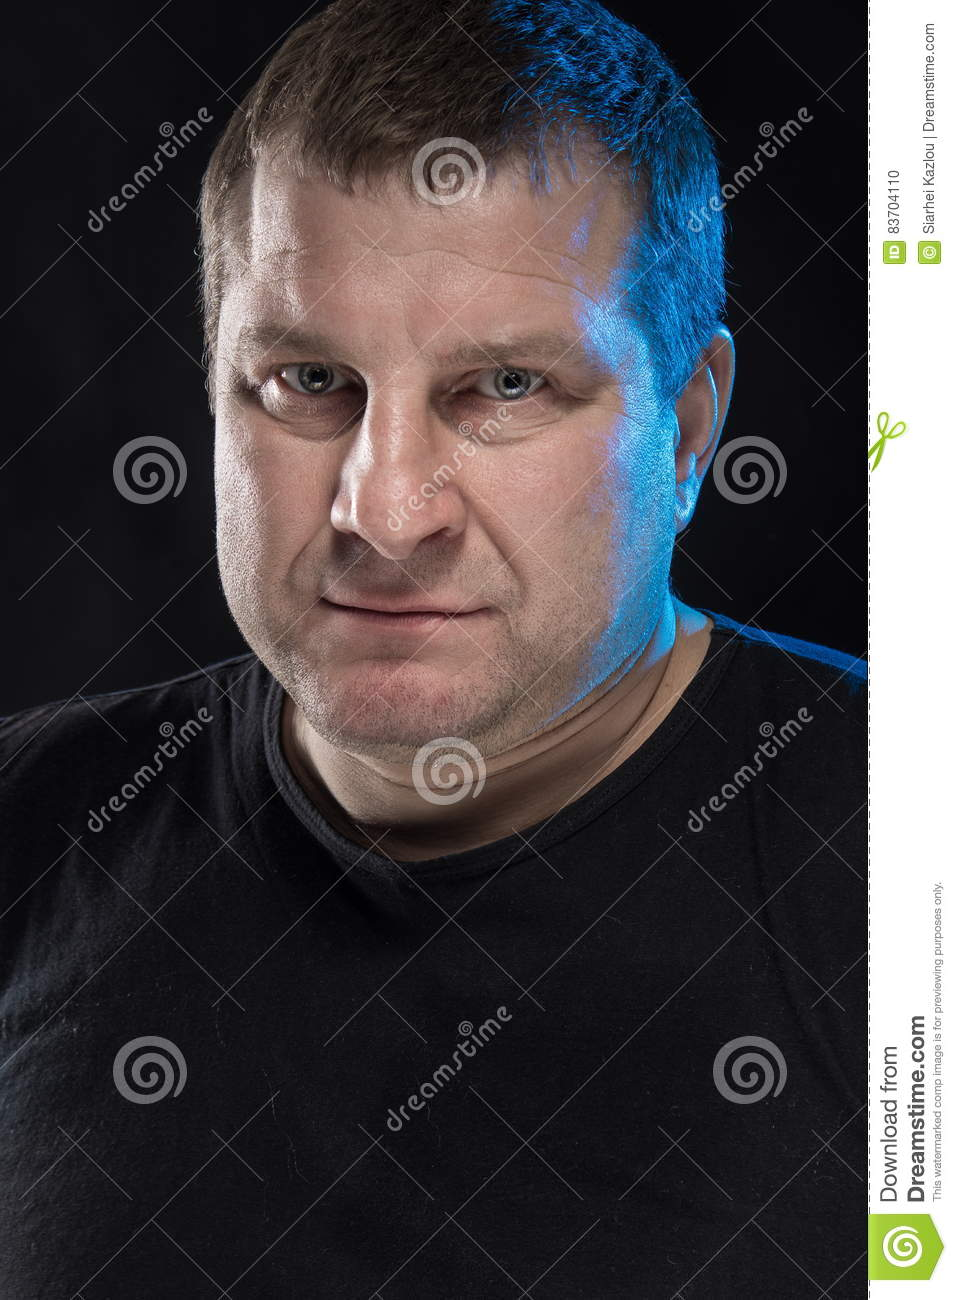 Brutal Man Actor Gesticulates And Grimaces. Stock Photo